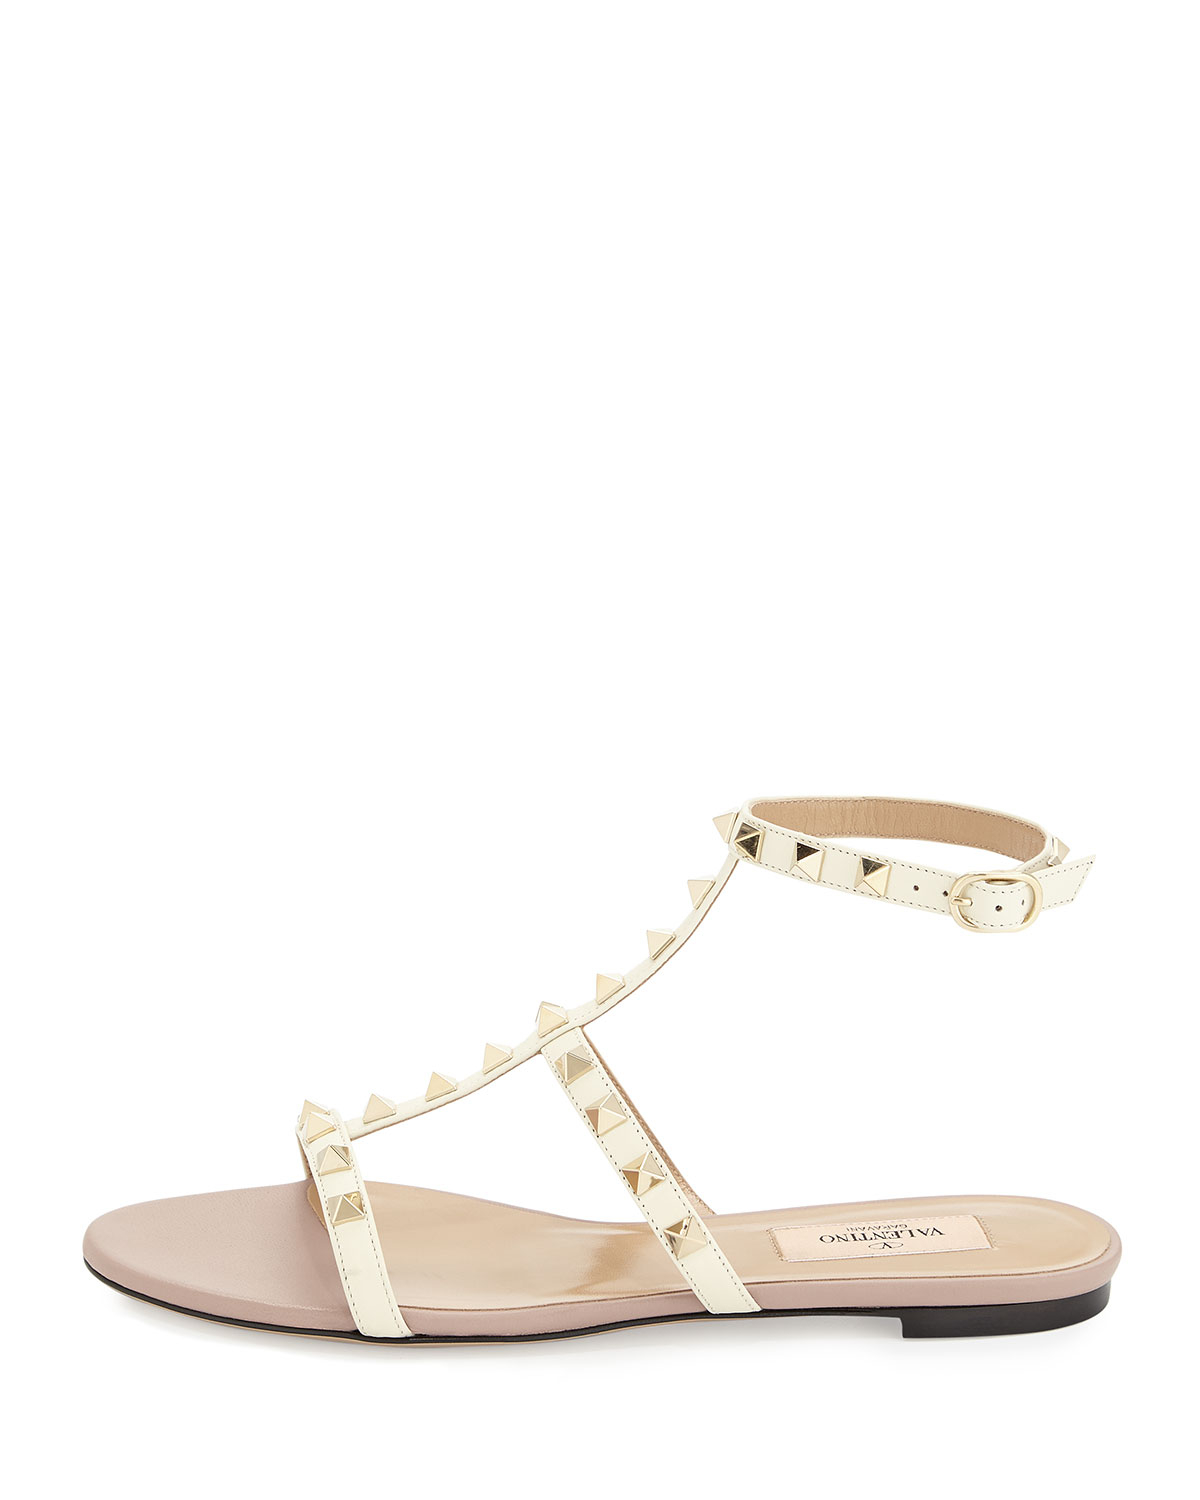 valentino-white-rockstud-ankle-strap-flat-sandal-product-1-27291843-0-690633433-normal.jpeg